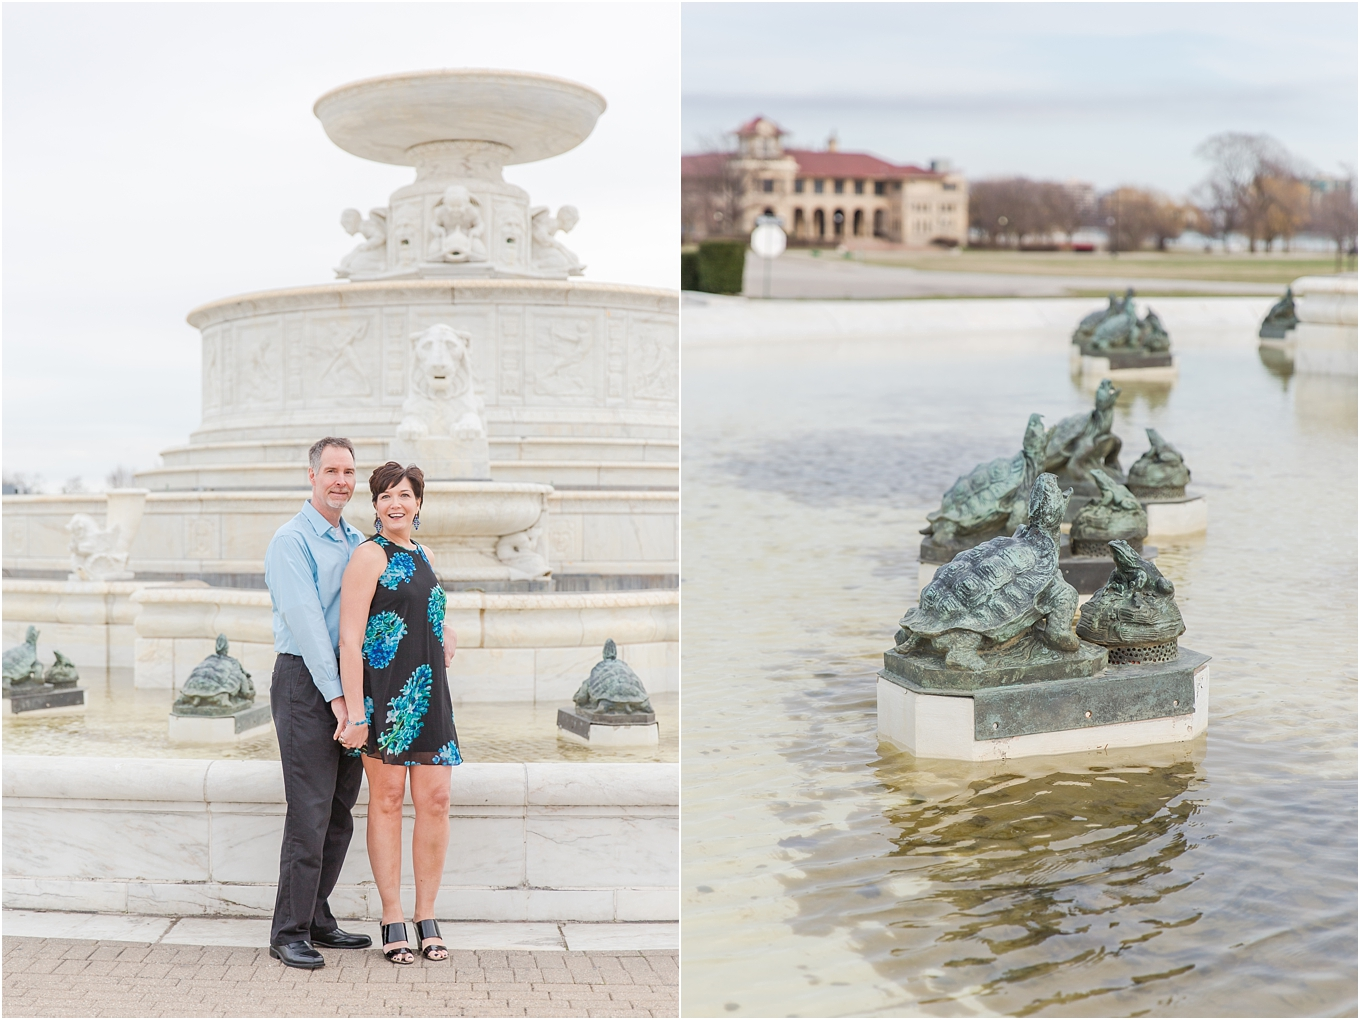 downtown-detroit-engagement-photos-on-belle-isle-by-courtney-carolyn-photography_0004.jpg